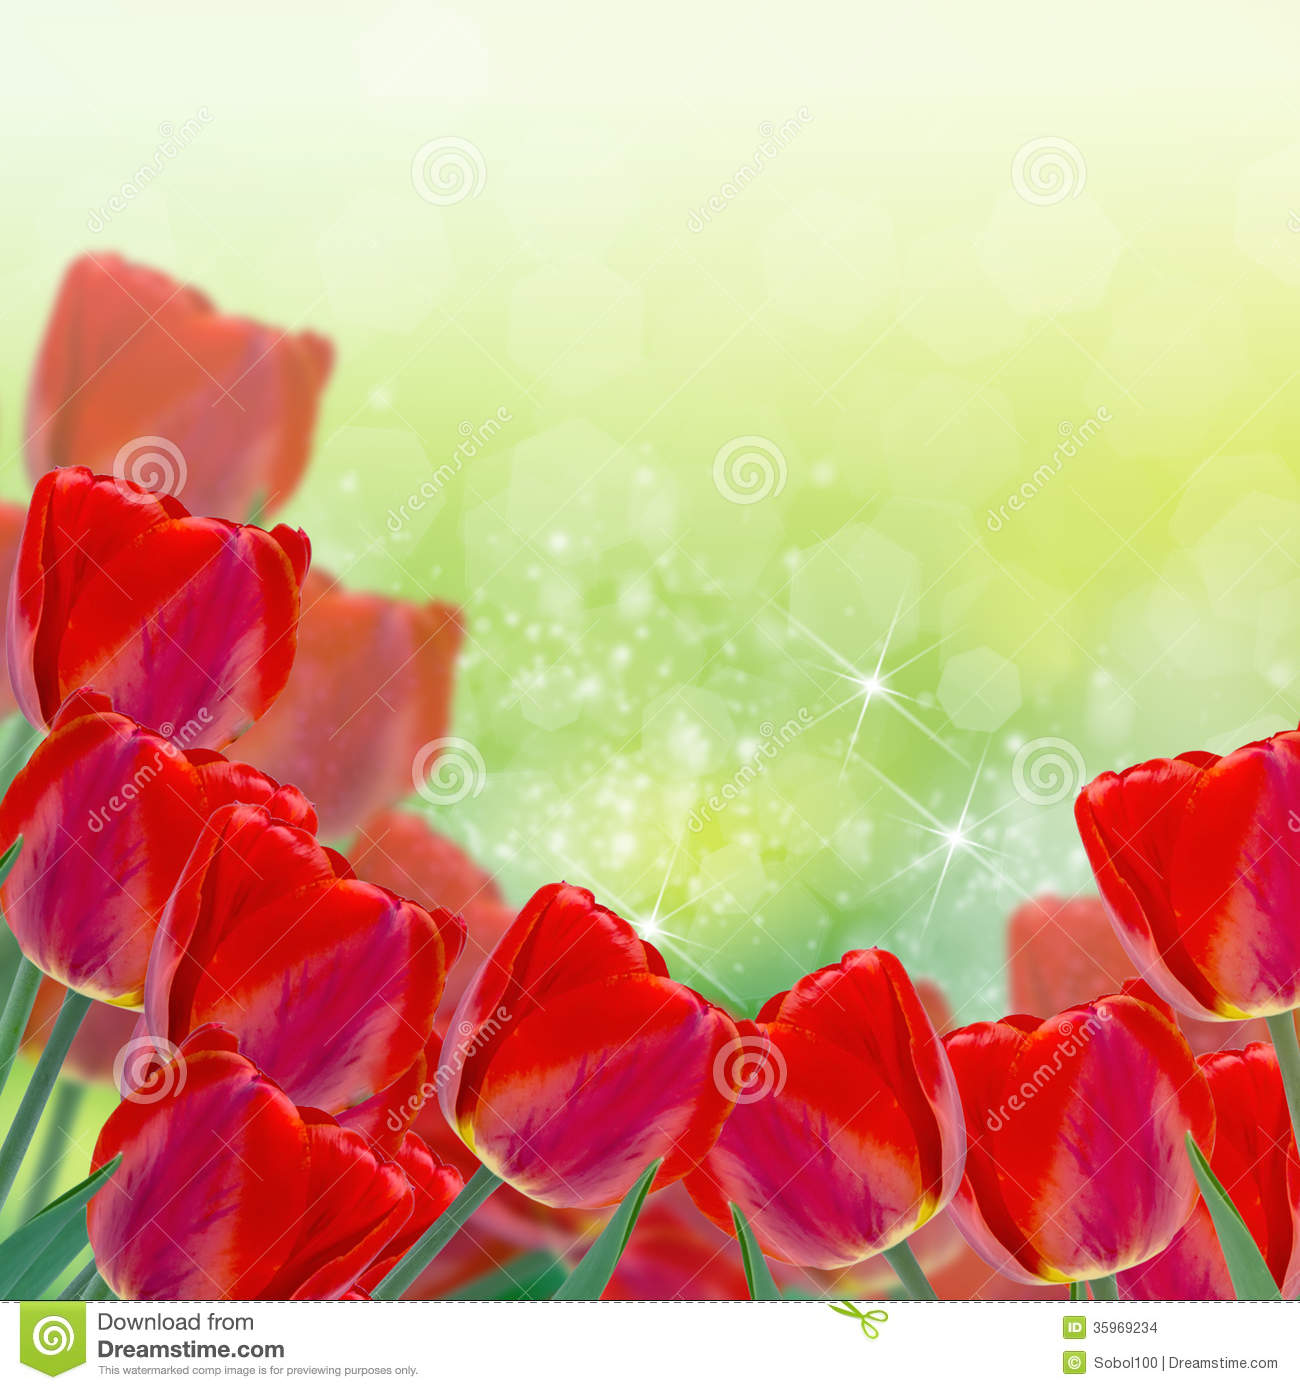 Abstract Floral Design with Fresh Flowers